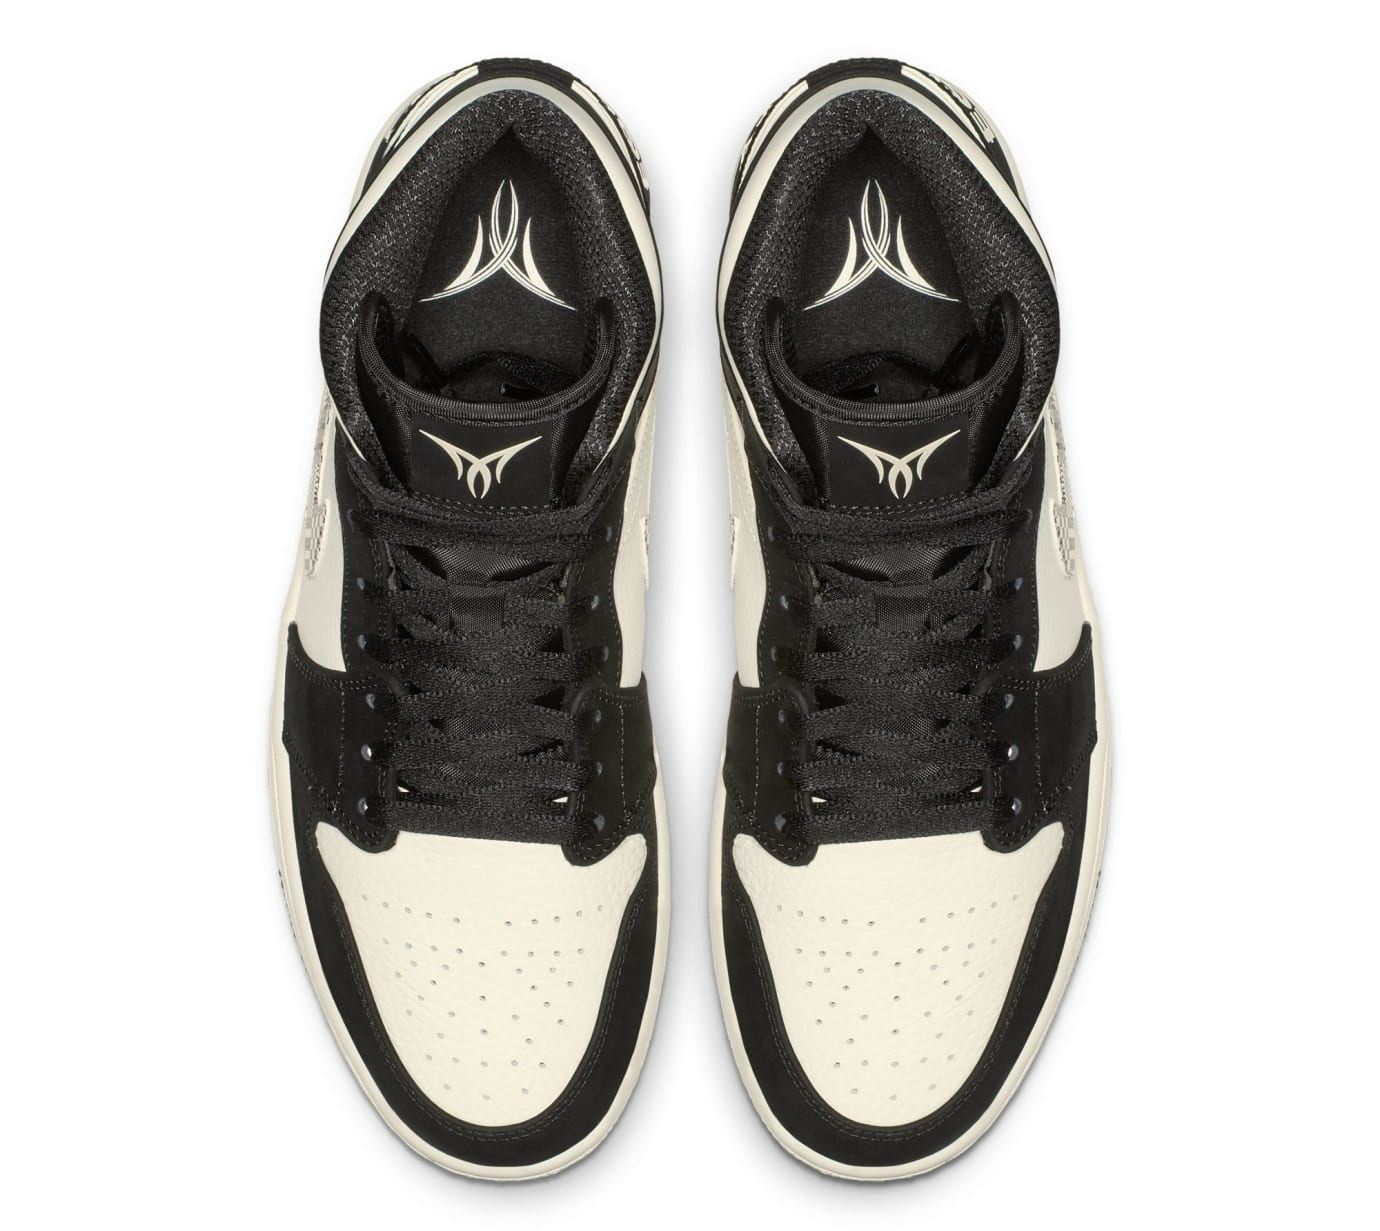 Air Jordan 1 Mid 'Equality' 852542-010 (Top)